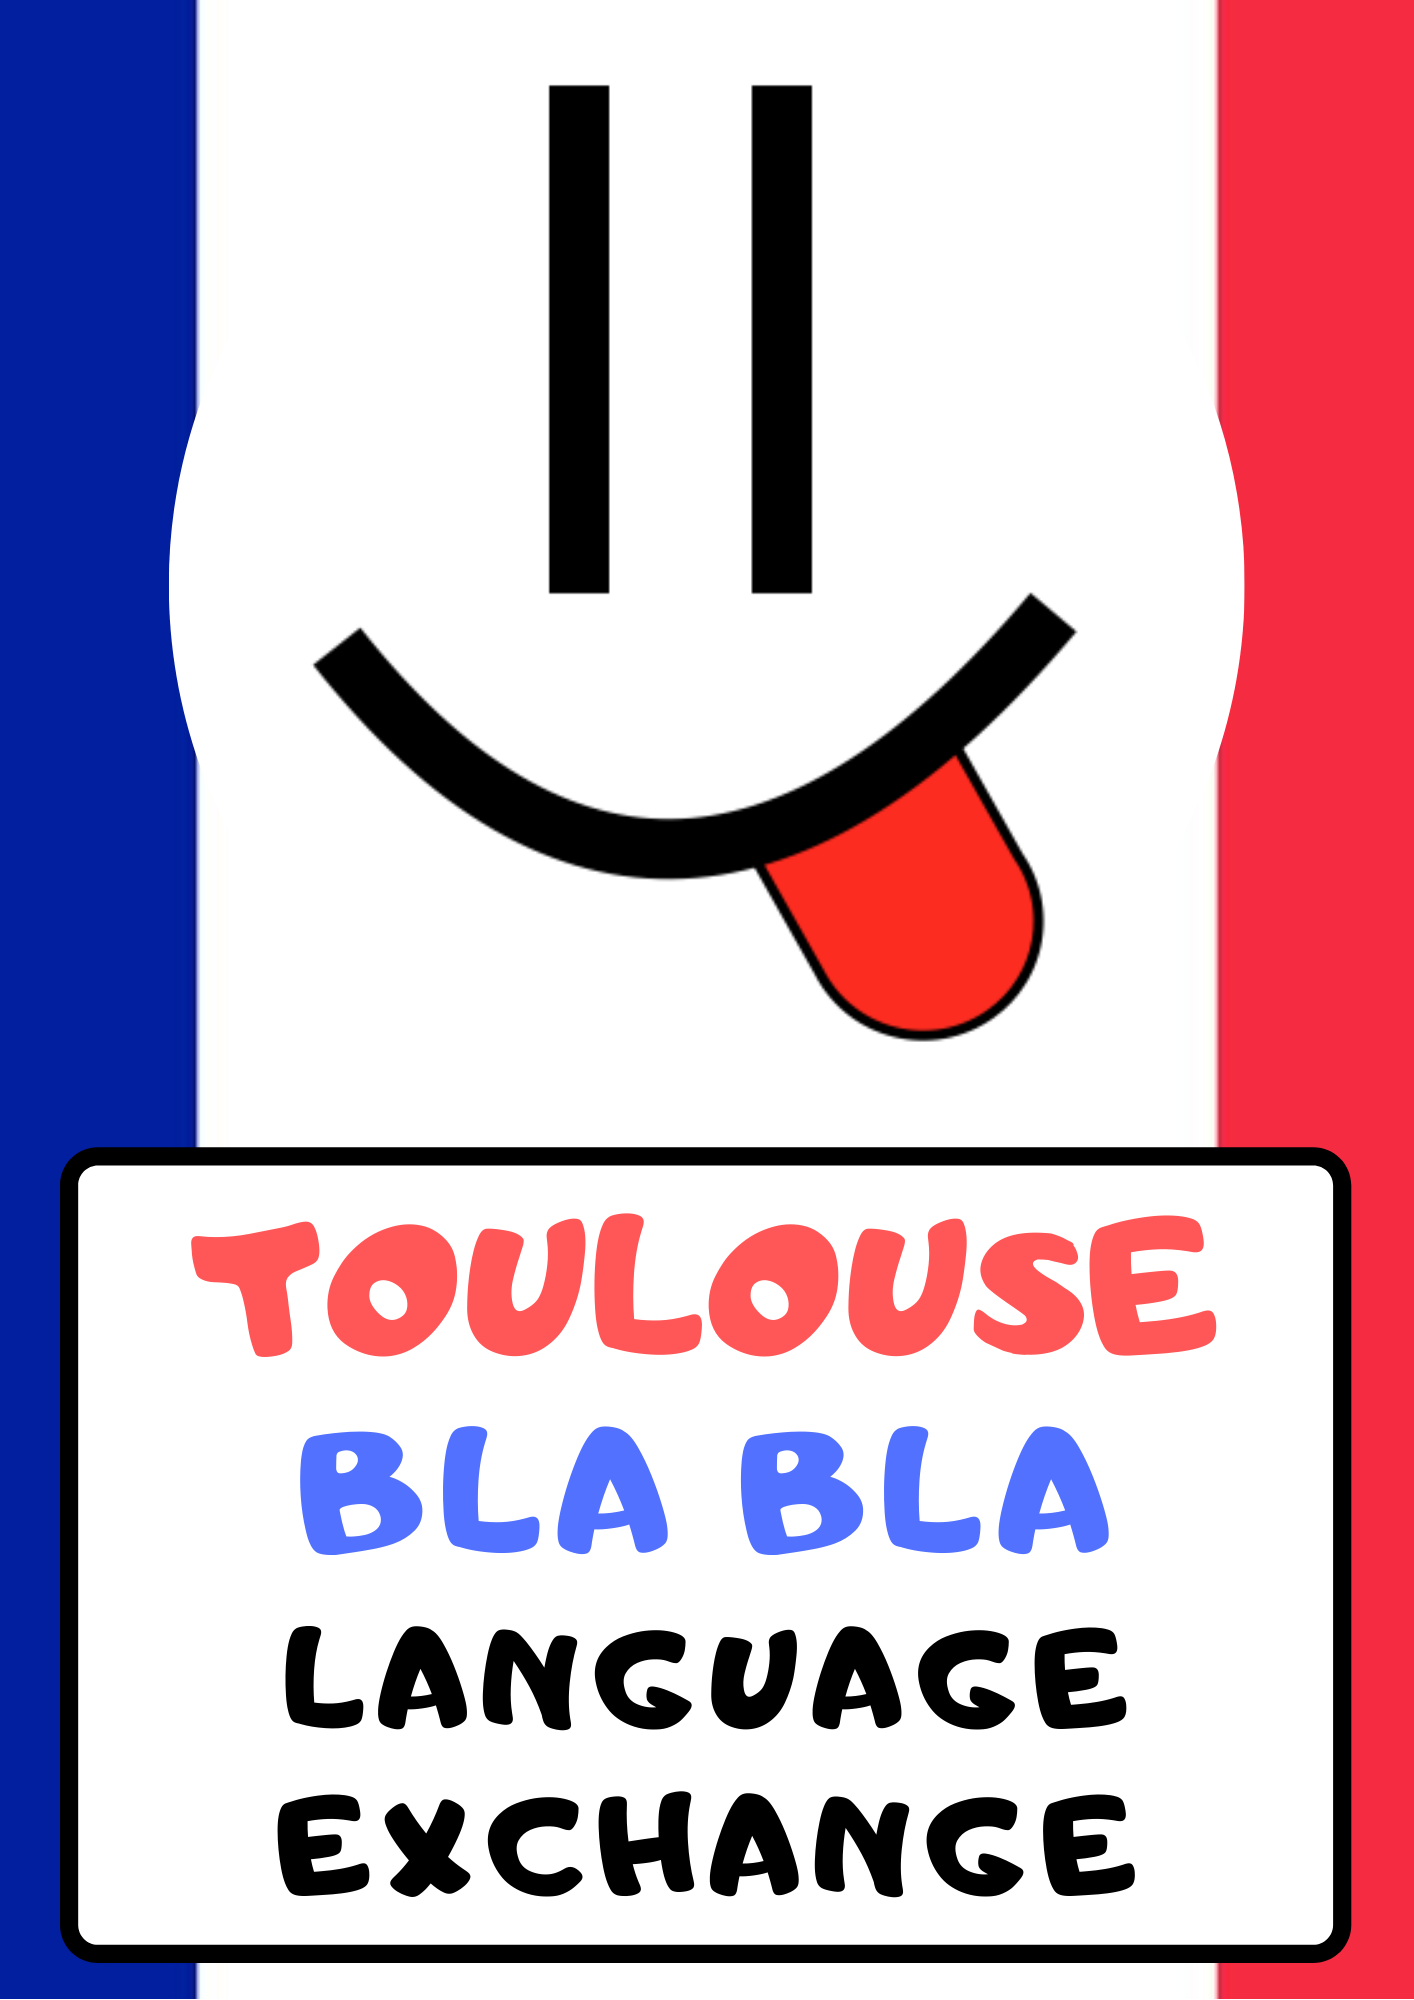 Toulouse BlaBla Language Exchange